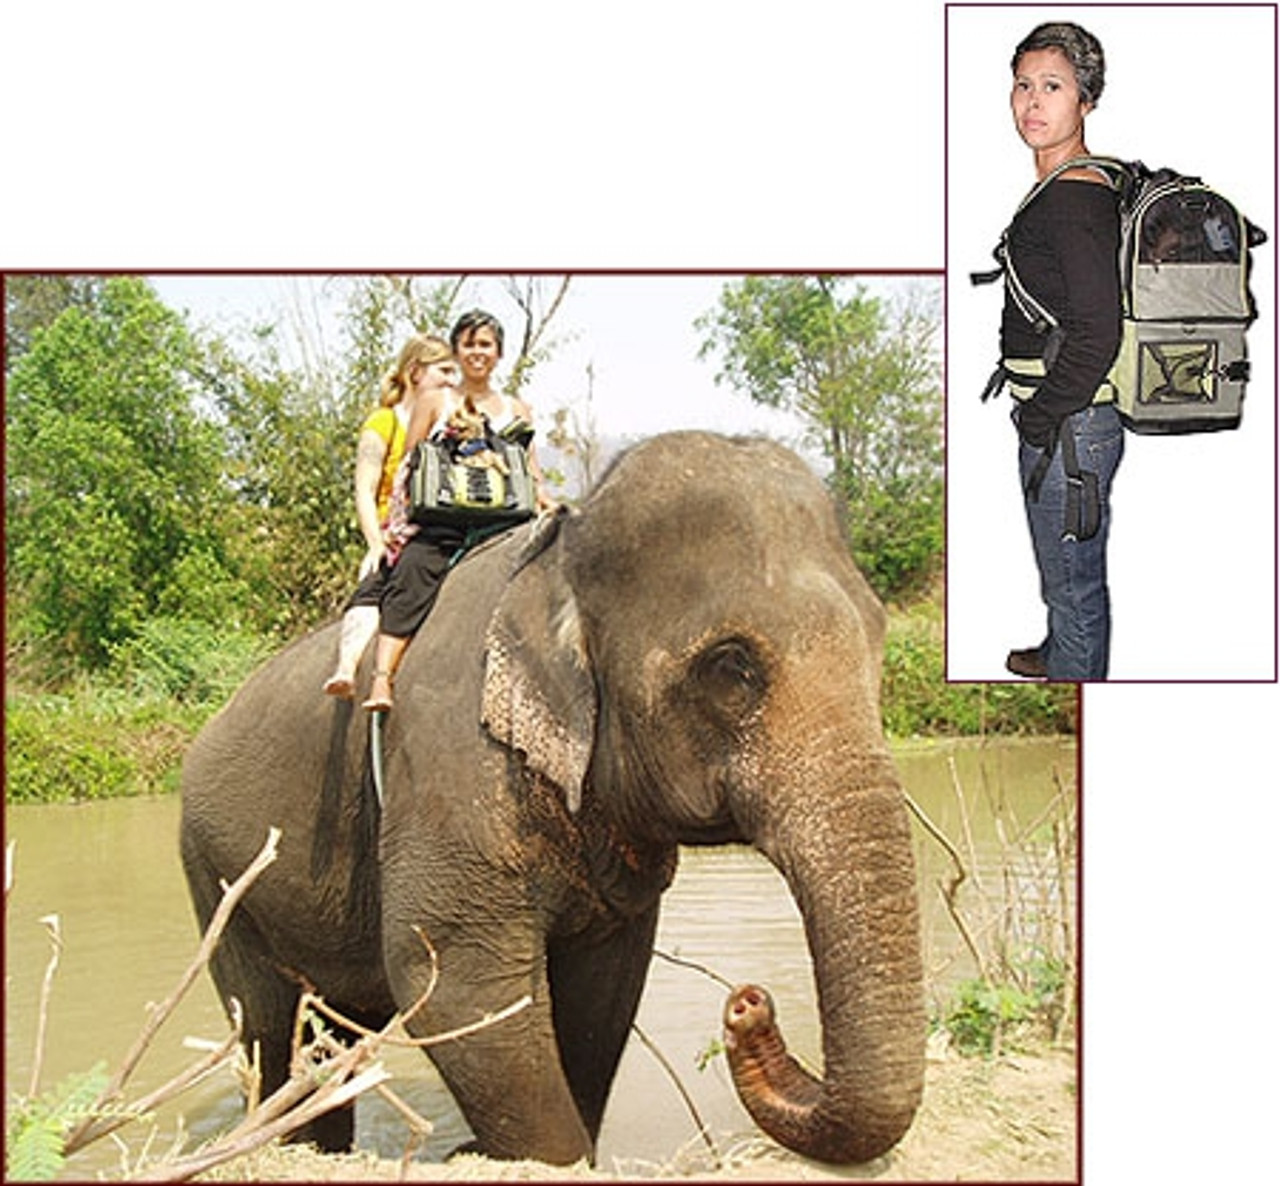 Elephant ride with my dog (2006 Winner)